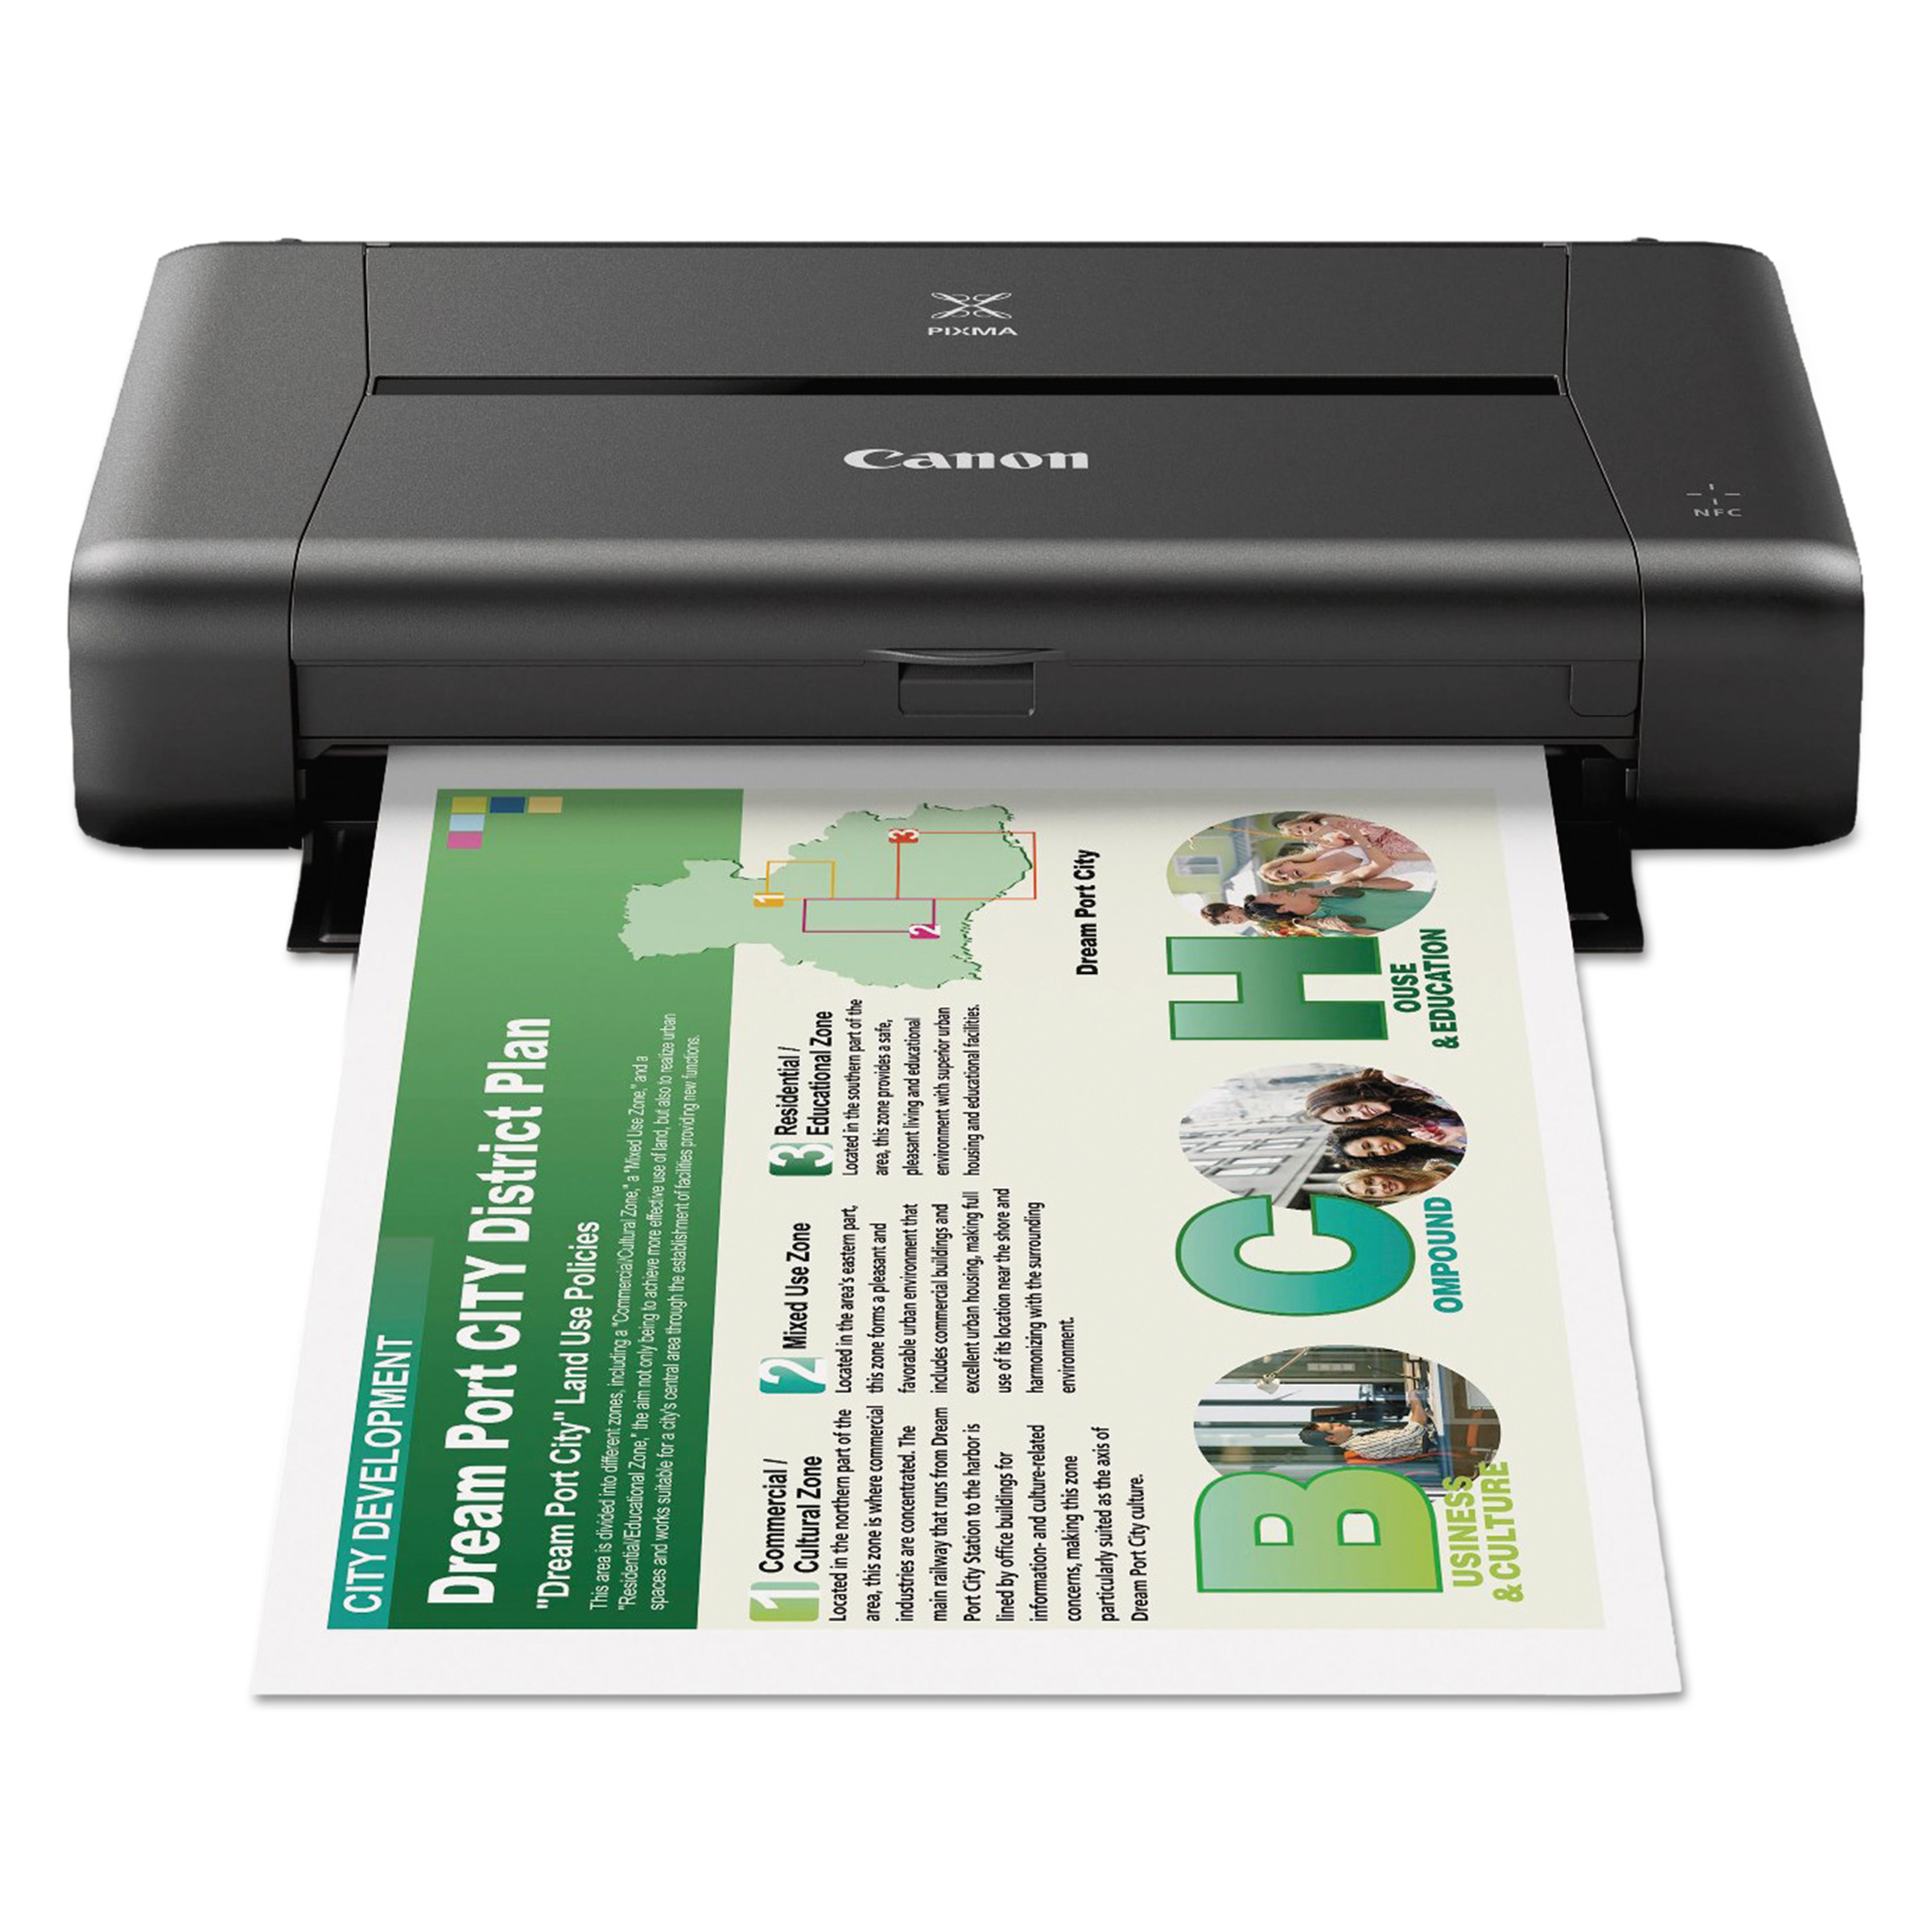 Canon 9596B002 PIXMA IP110 Wireless Mobile Printer by Canon